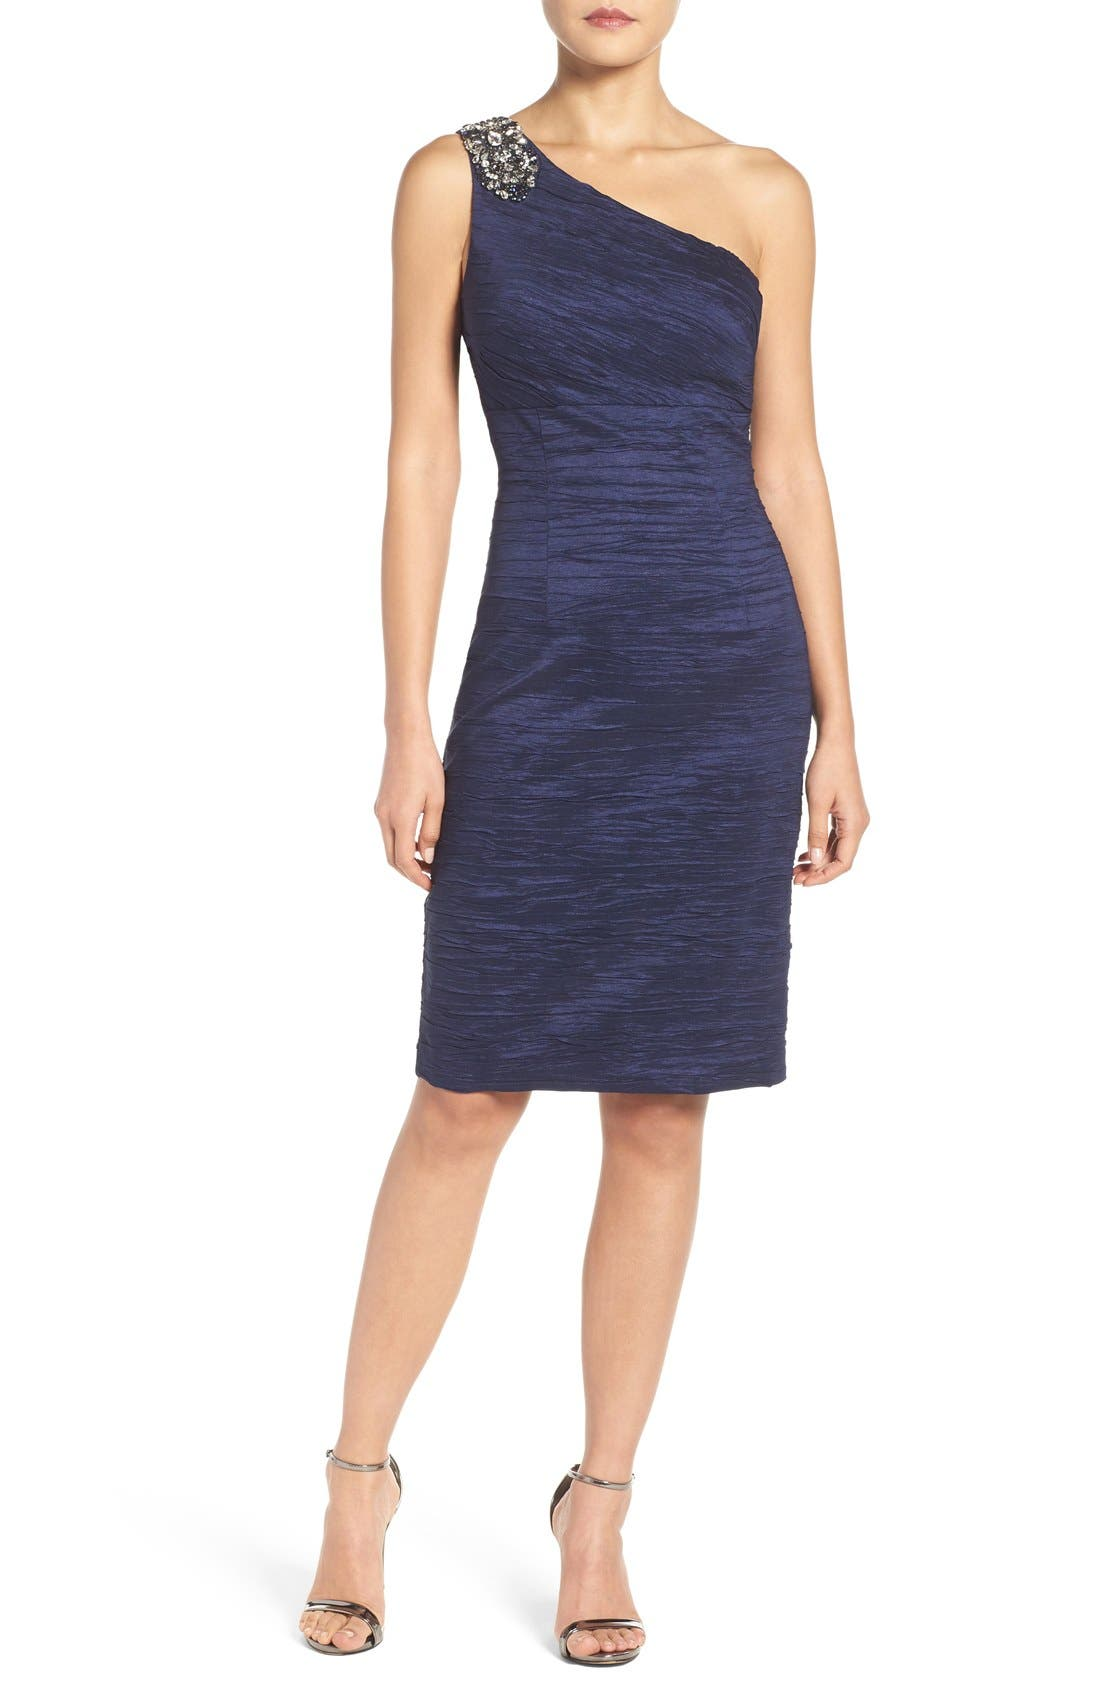 Alternate Image 1 Selected - Eliza J Embellished Taffeta Sheath Dress (Regular & Petite)